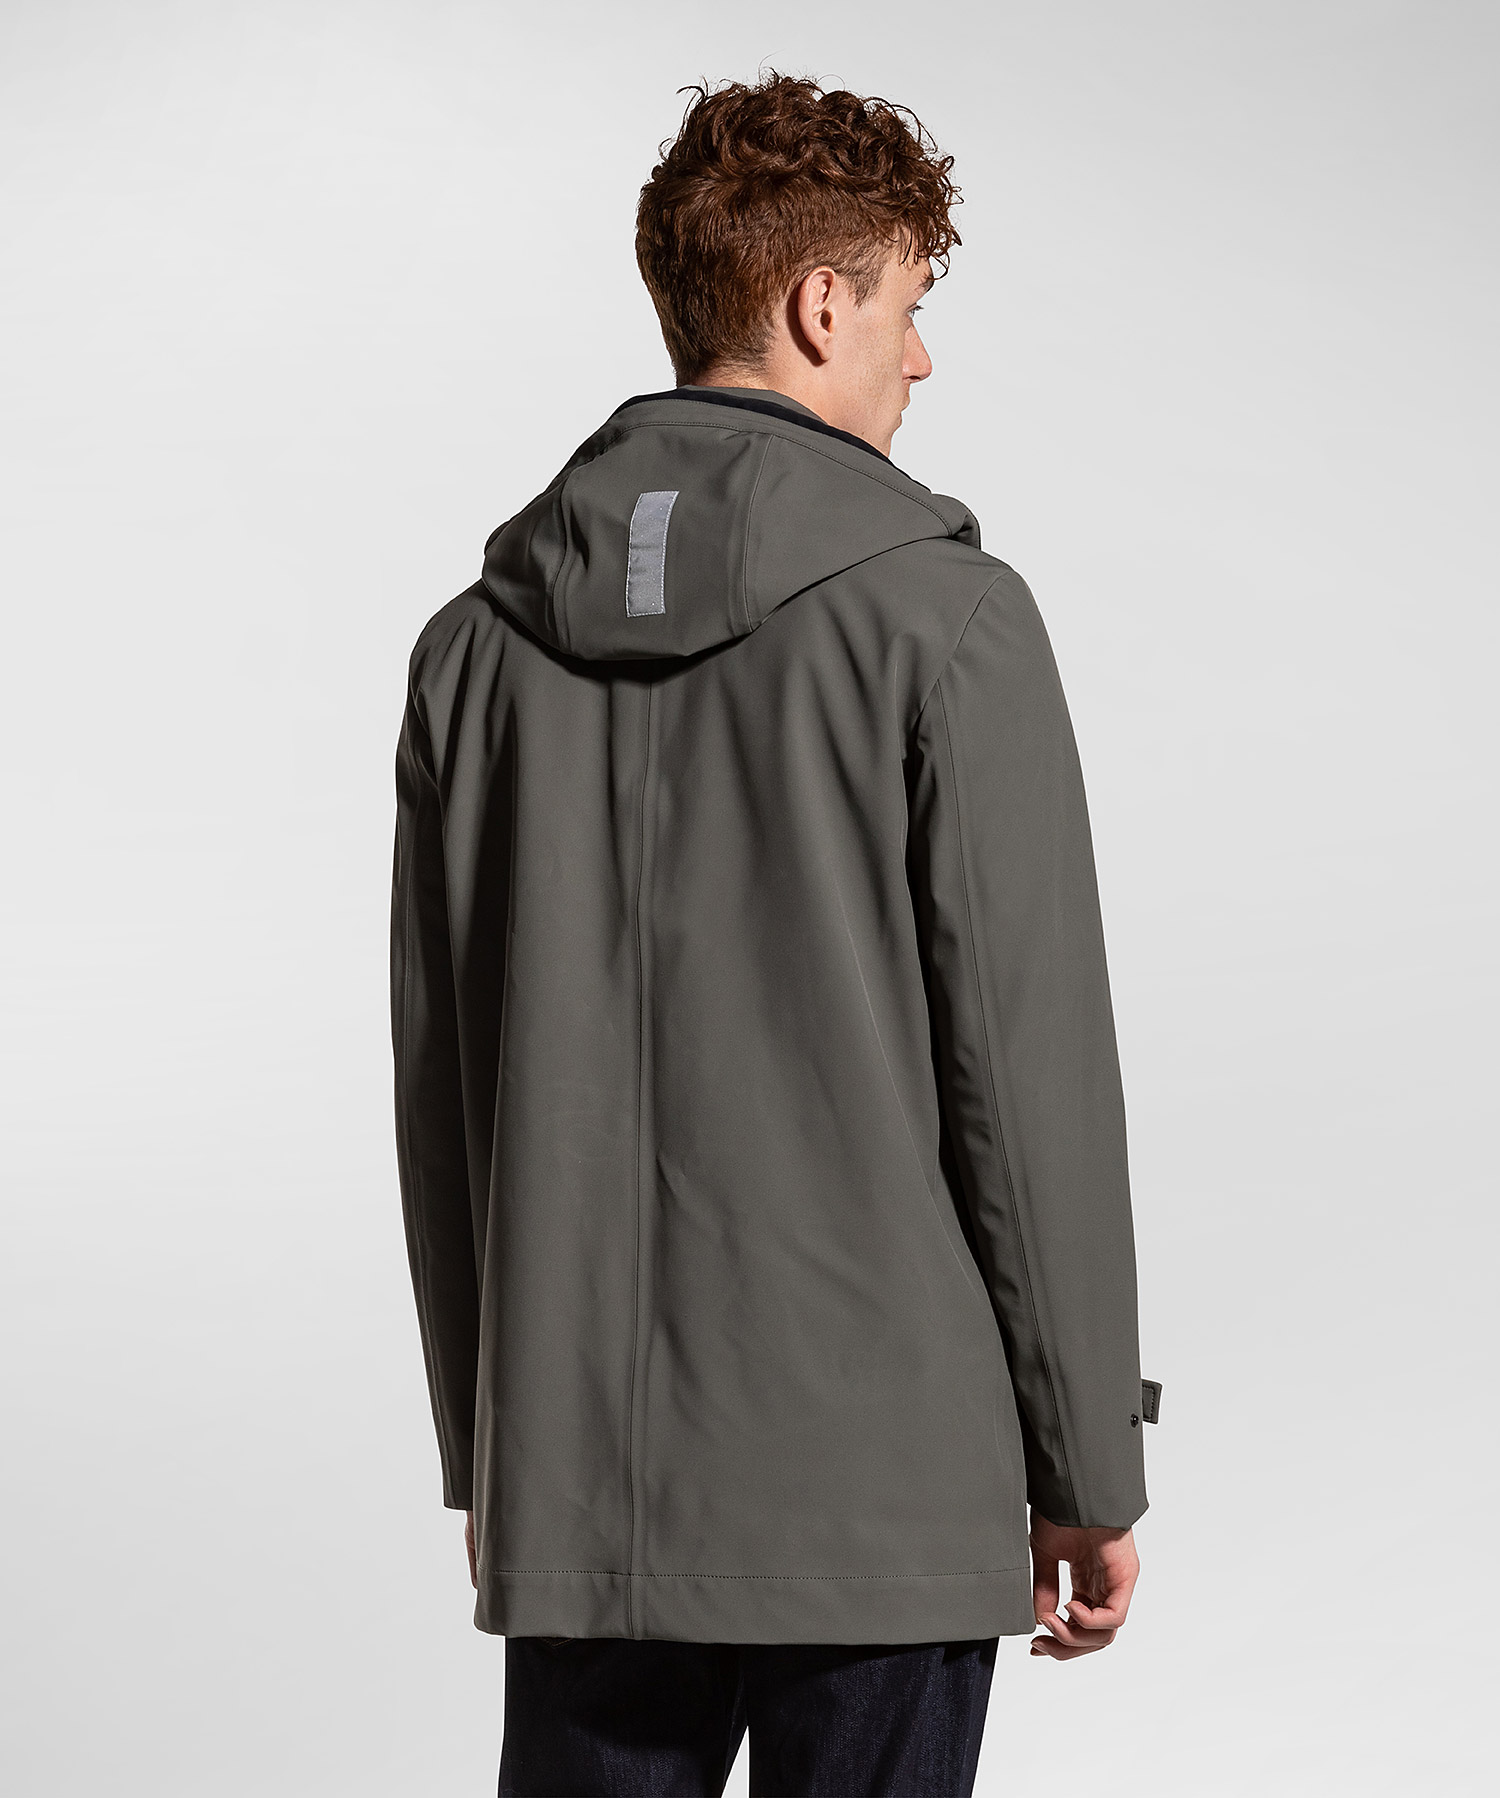 Groff kp - trench coat in padded technical fabric PEUTEREY | Coat | PEU3310690